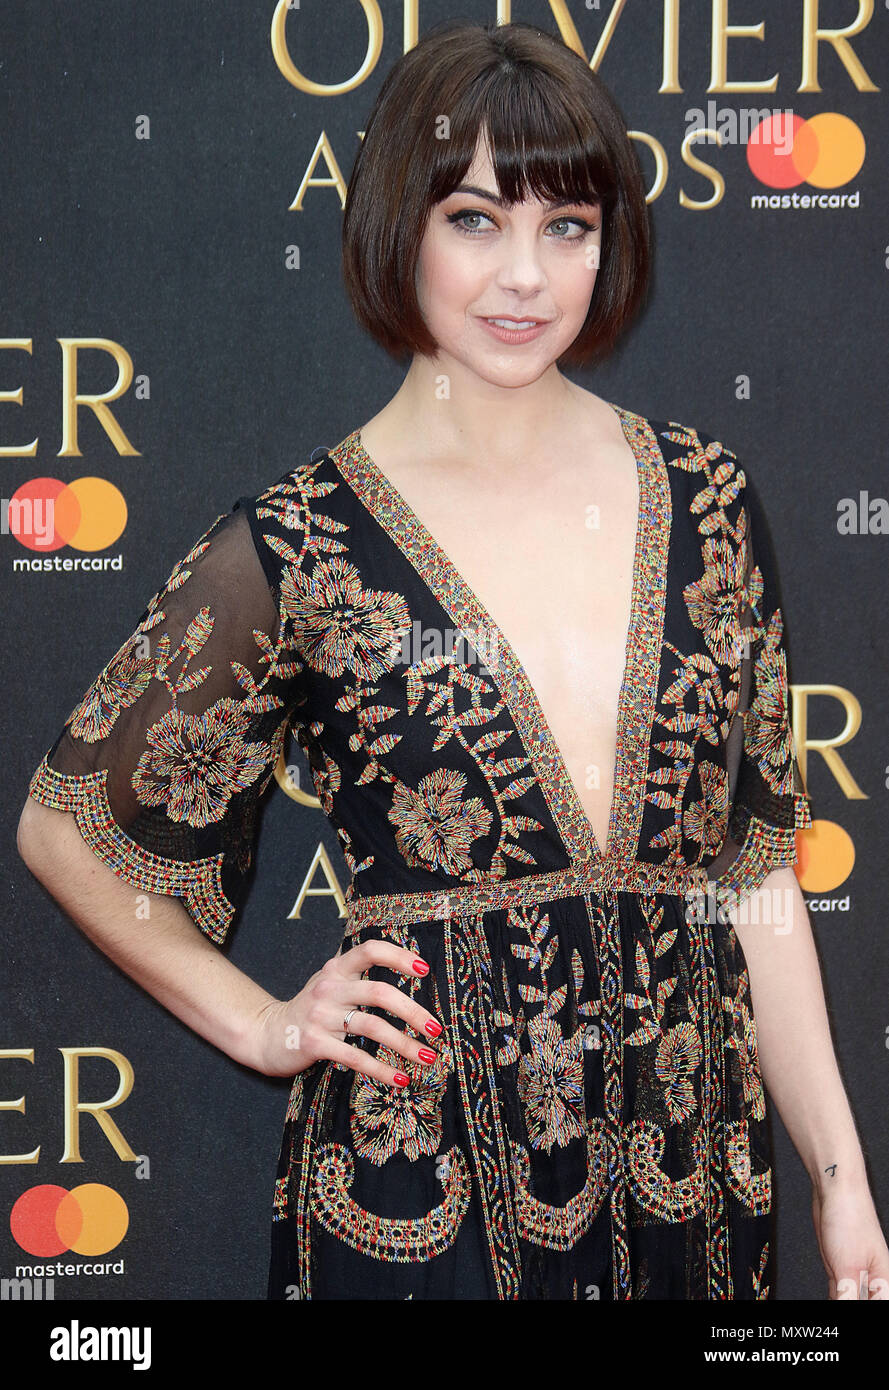 April 08, 2018 - Leanne Cope attending The Olivier Awards With Mastercard, Royal Albert Hall in London, England, UK - Stock Image